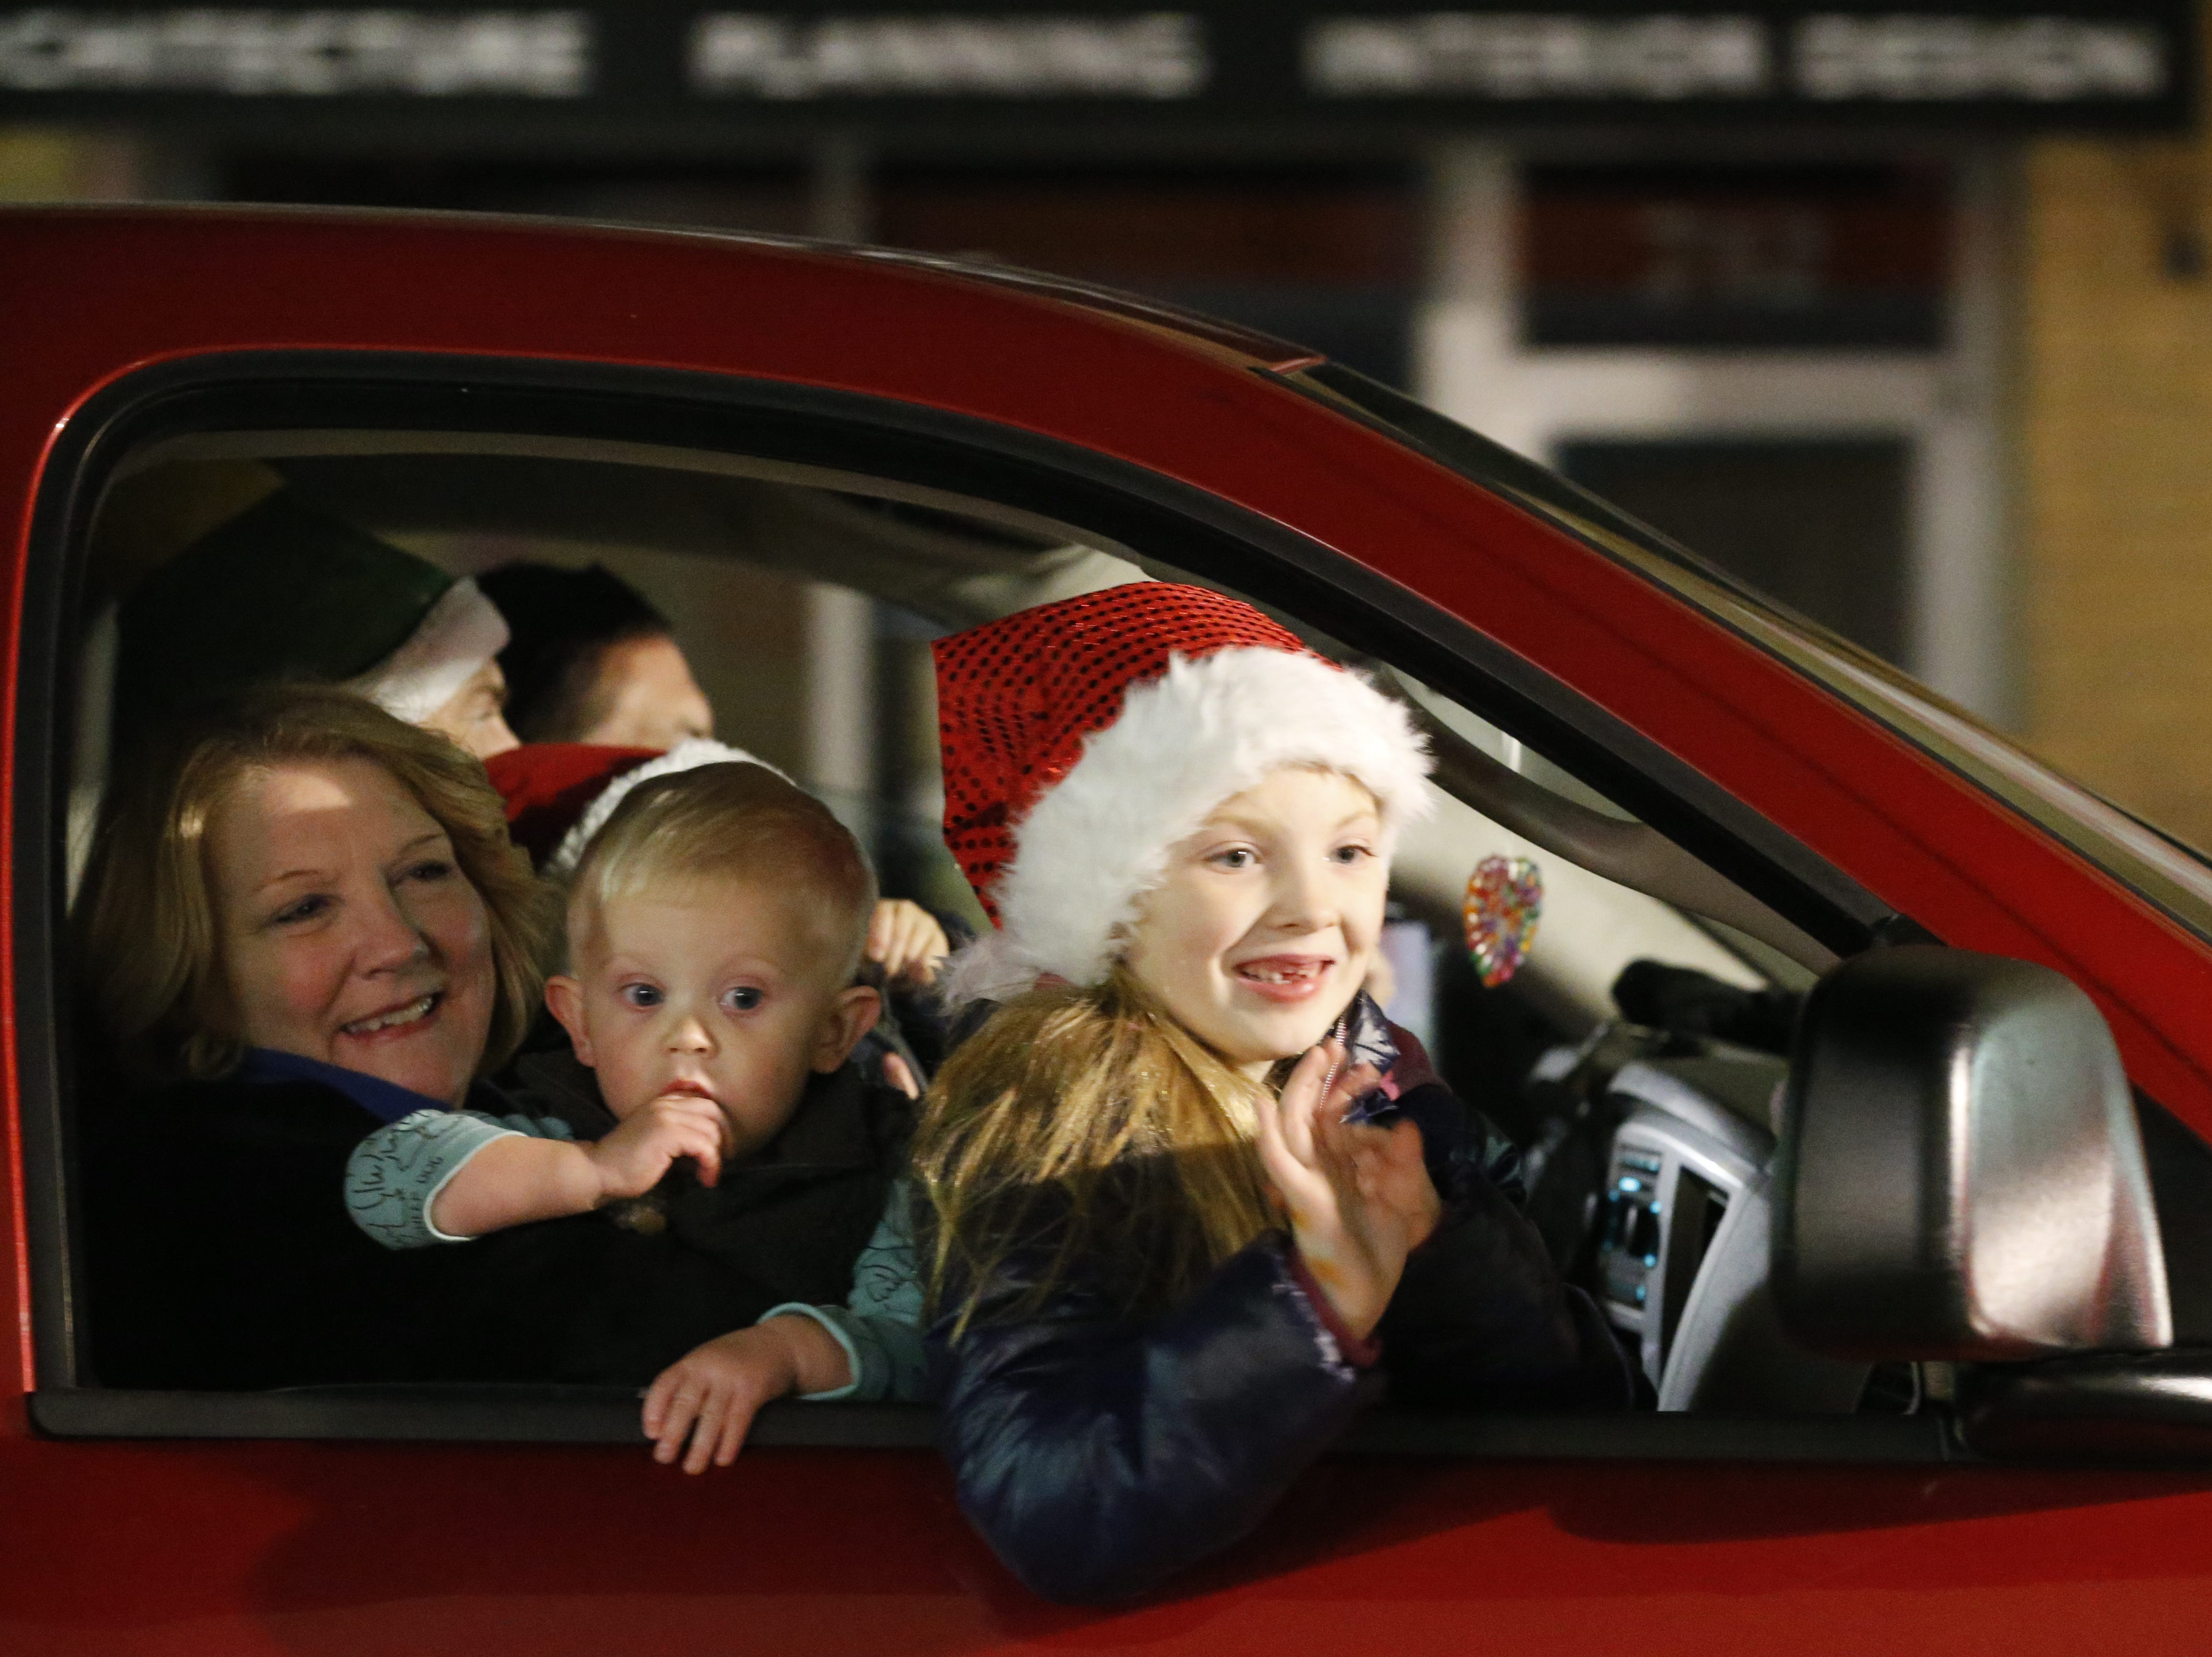 Richmond's annual Holiday Parade took place on Friday, Dec. 7, 2018, along East Main Street through the downtown area.